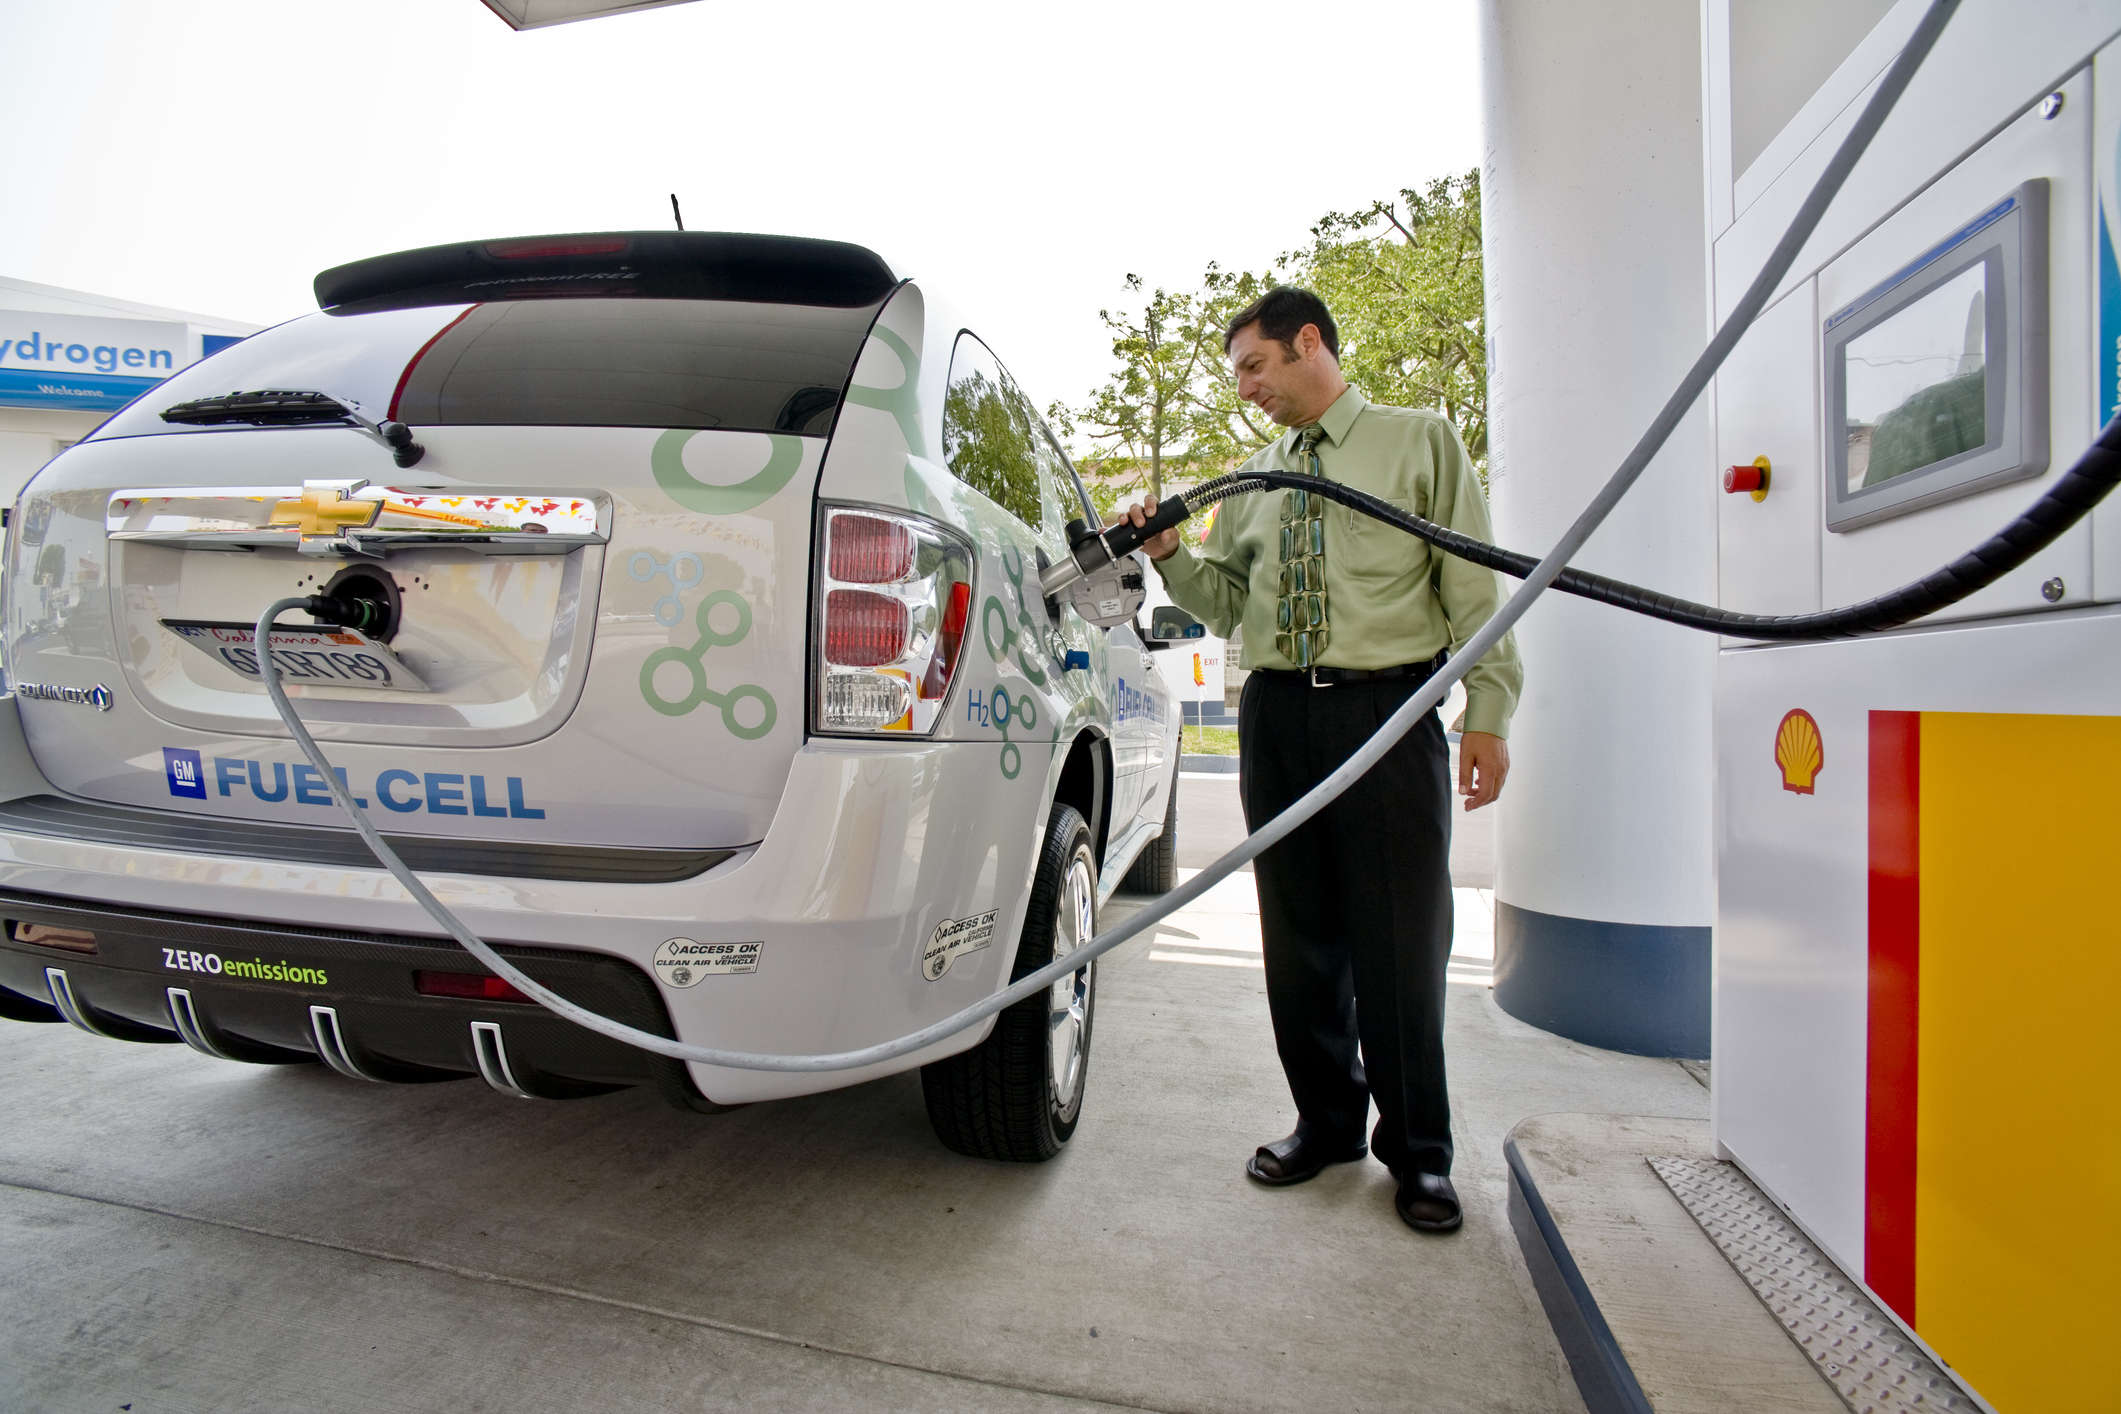 fuel cell: Toyota to supply hydrogen fuel-cell tech to China's FAW